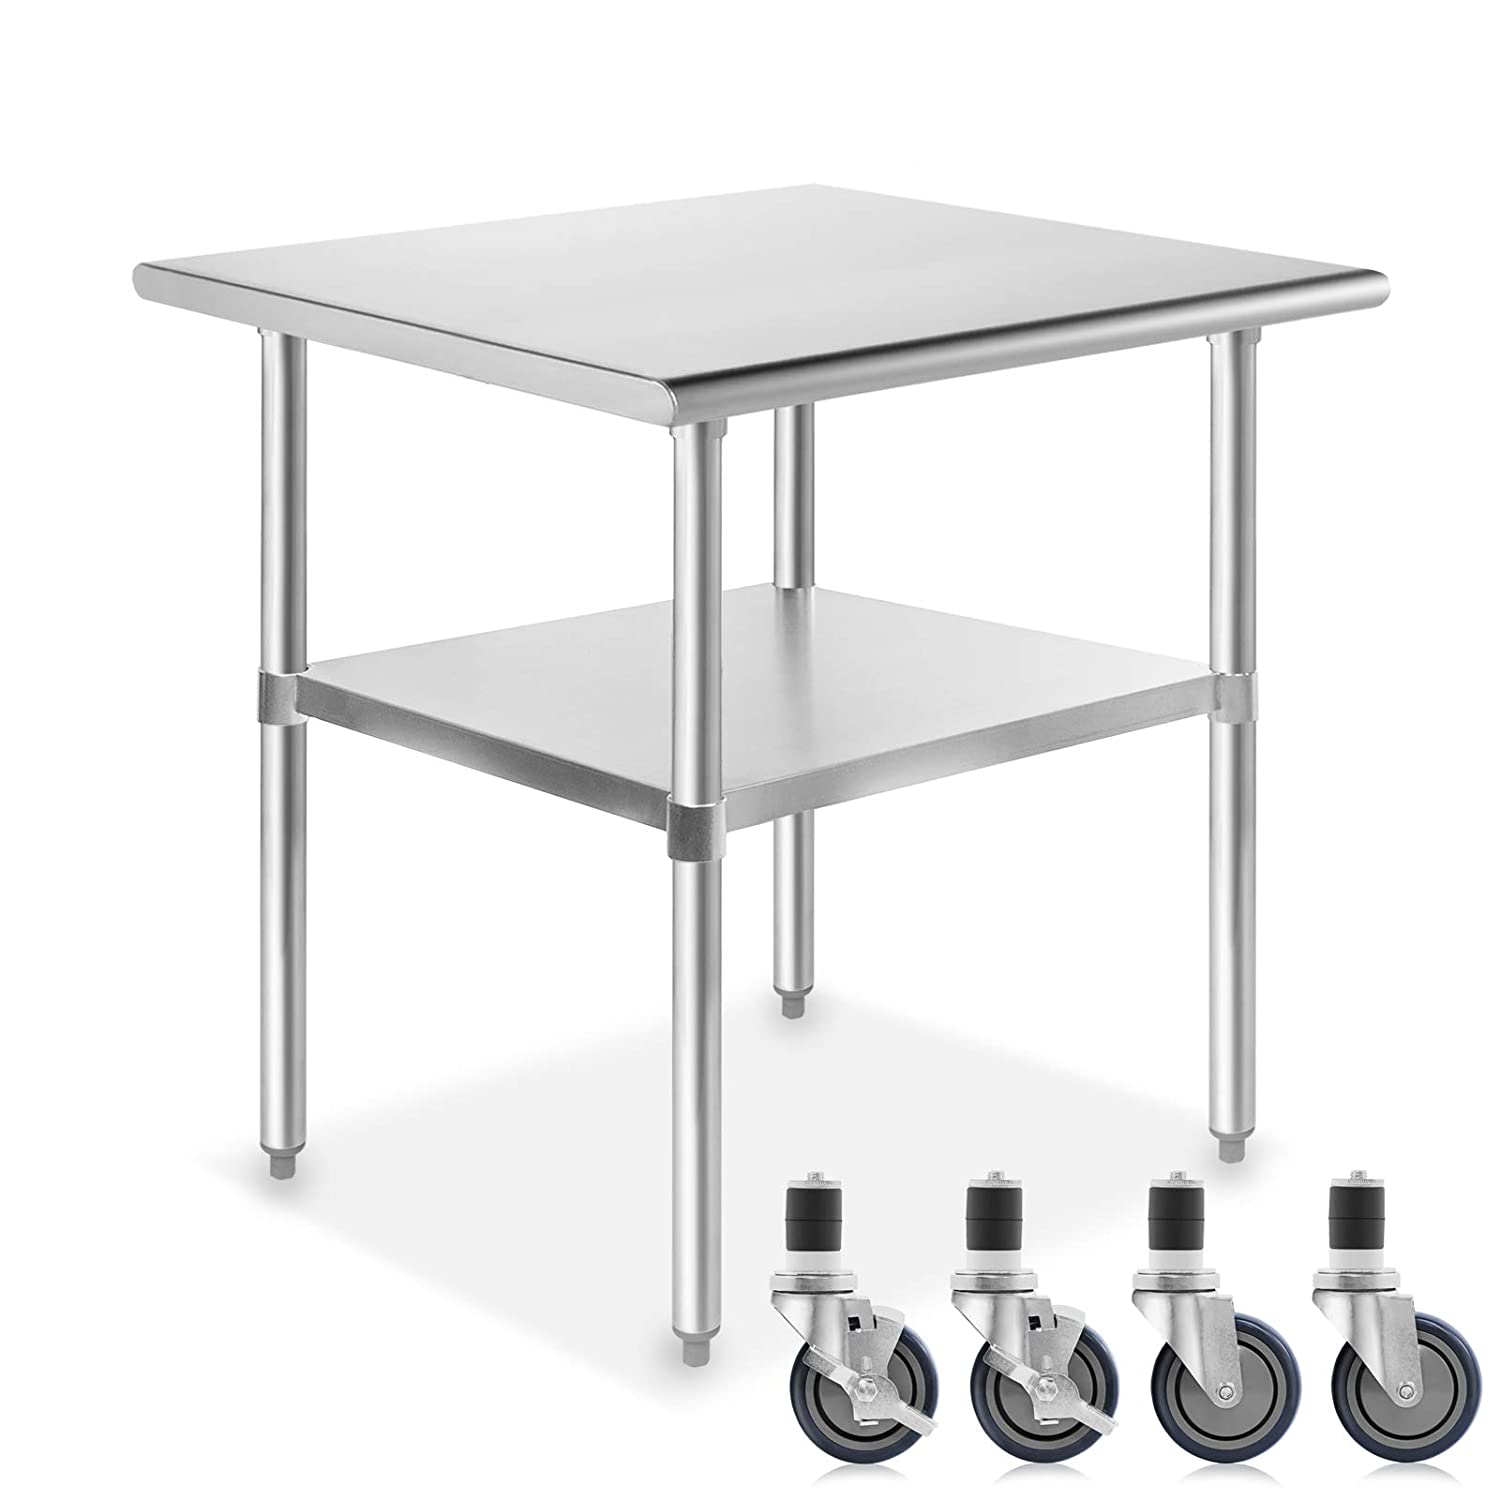 Indefinitely GRIDMANN NSF Stainless Steel Translated Commercial Prep Tabl Work Kitchen